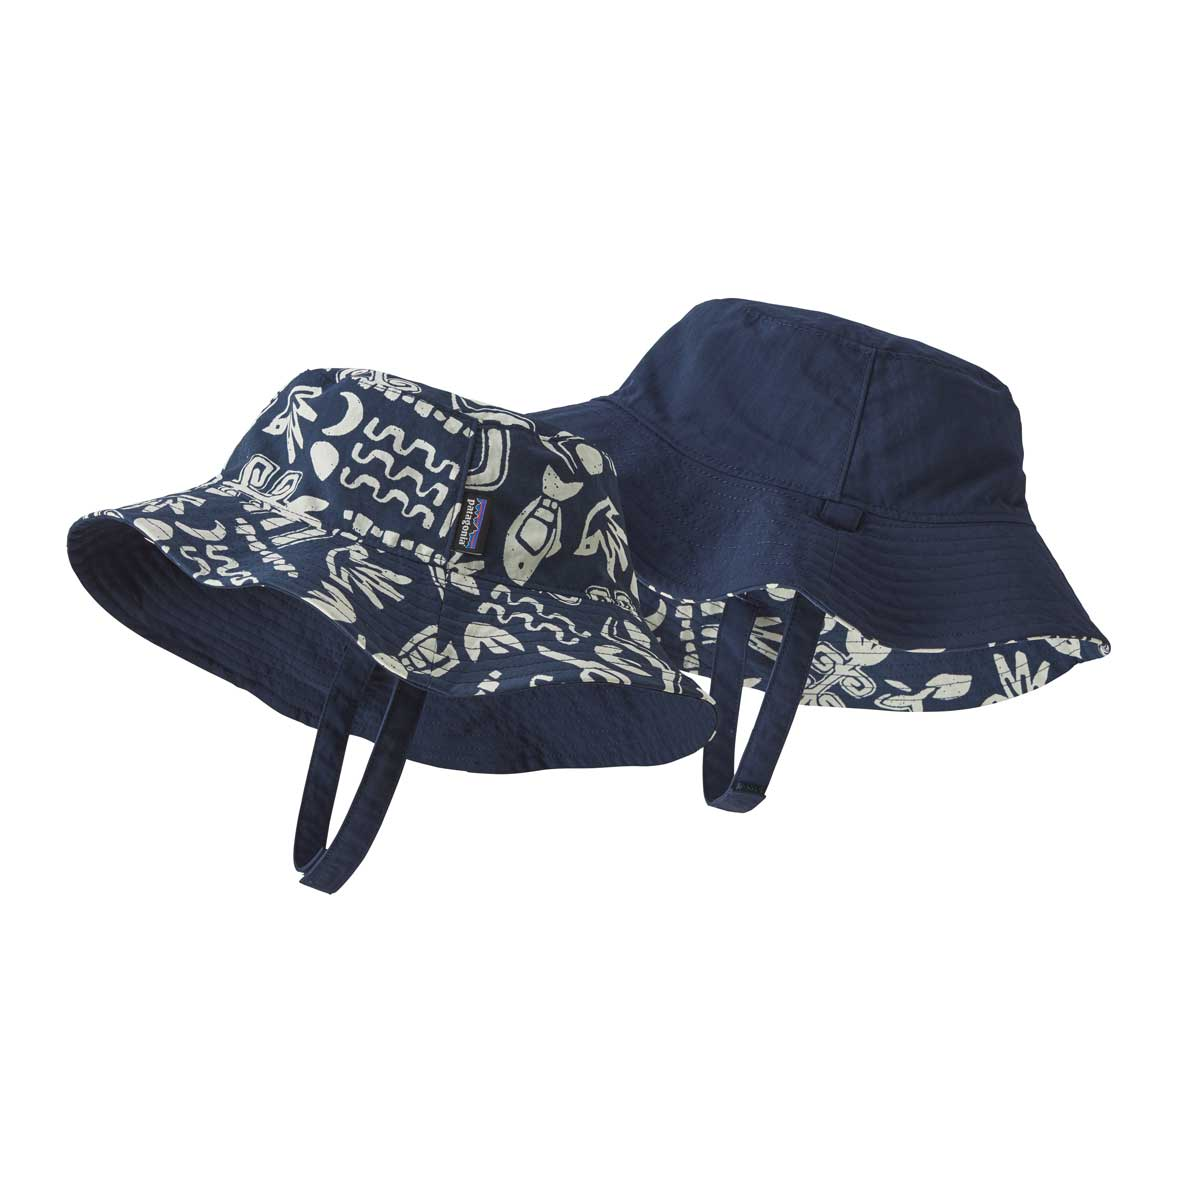 Patagonia kids' Sun Bucket Hat in Backyard Explorer Stone Blue